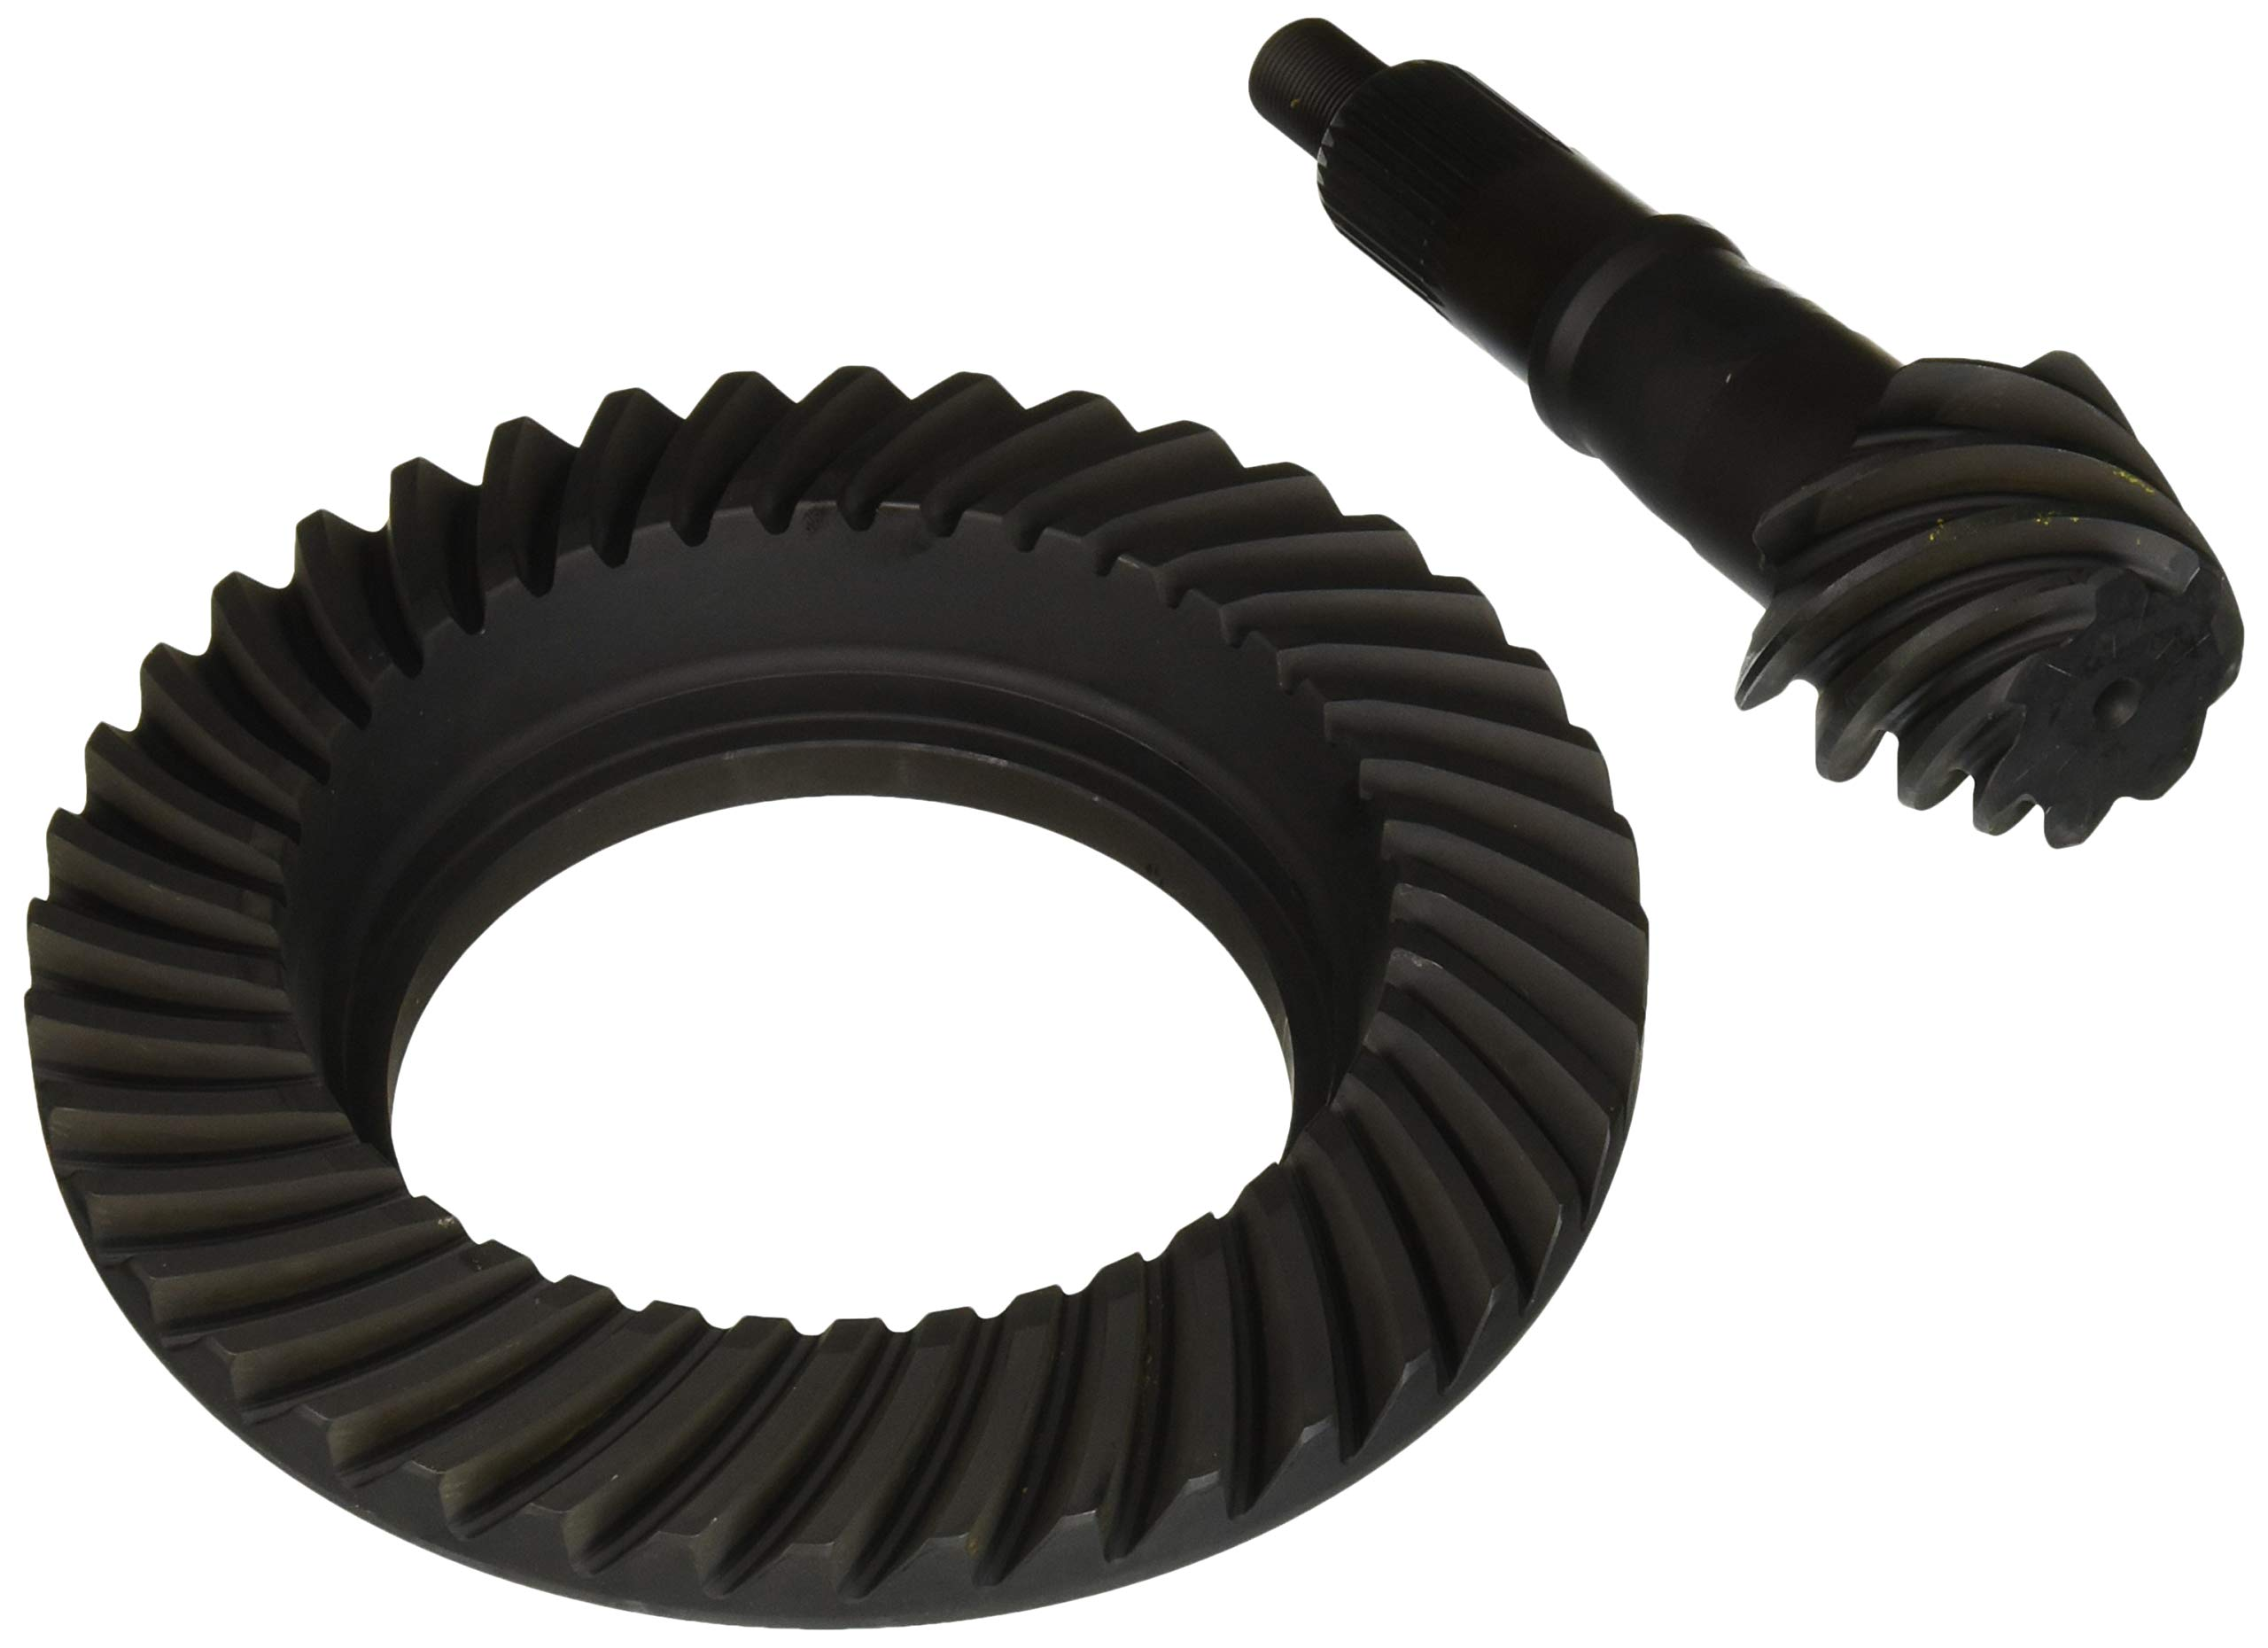 Motive Gear F888571 8.8'' Rear Ring and Pinion for Ford (5.71 Ratio) by Motive Gear